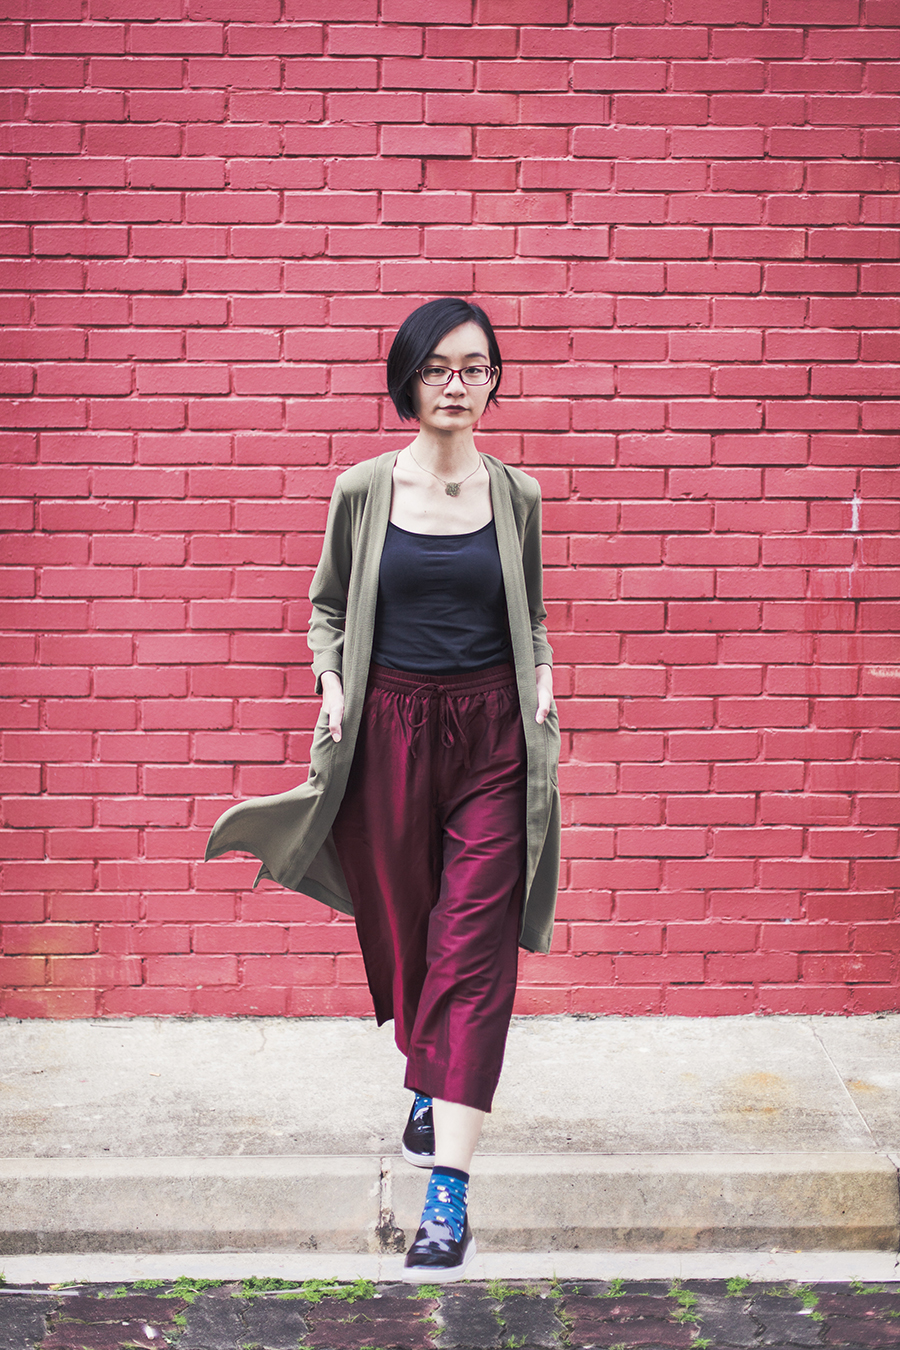 RGB outfit: H&M olive green trench coat, Max oxblood crop pants, Uniqlo black bratop, Don Quijote blue tabi socks, Zalora black patent shoes, Firmoo red glasses.